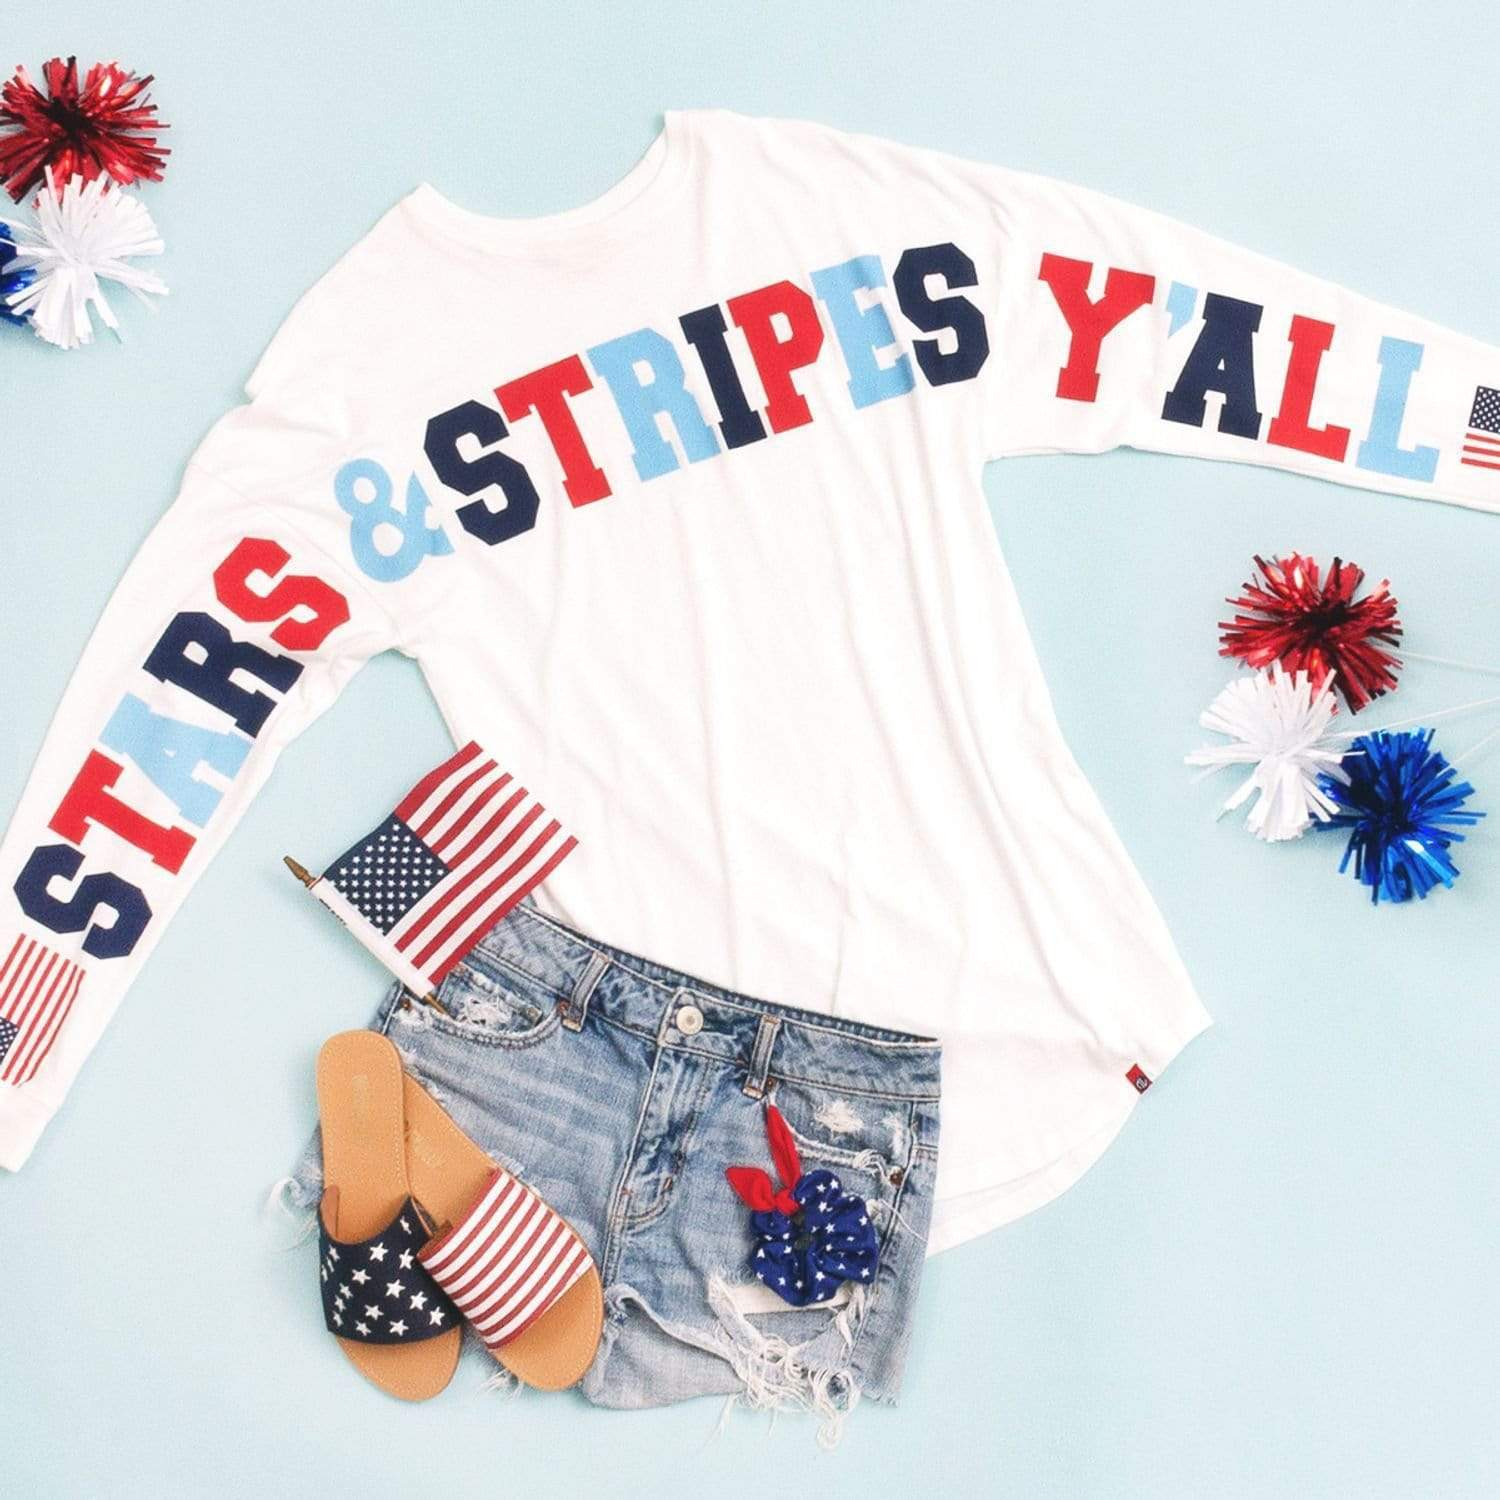 Stars and Stripes Y'all Top